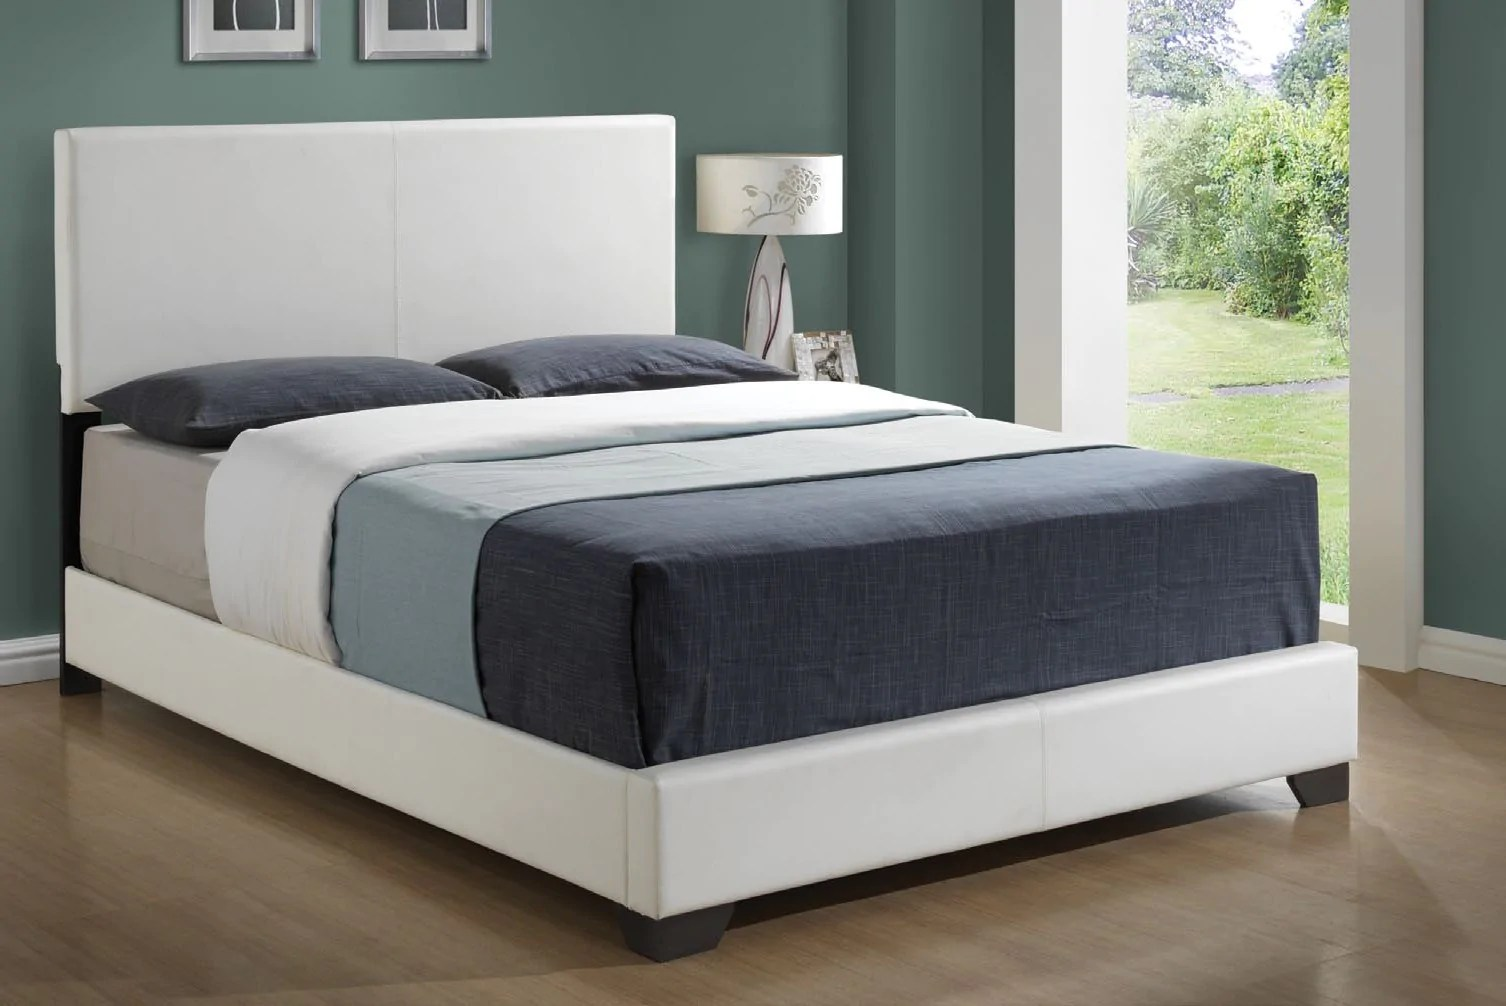 Lit Simili Cuir Blanc White Leather Look Queen Size Bed Lit Queen Simili Cuir Blanc